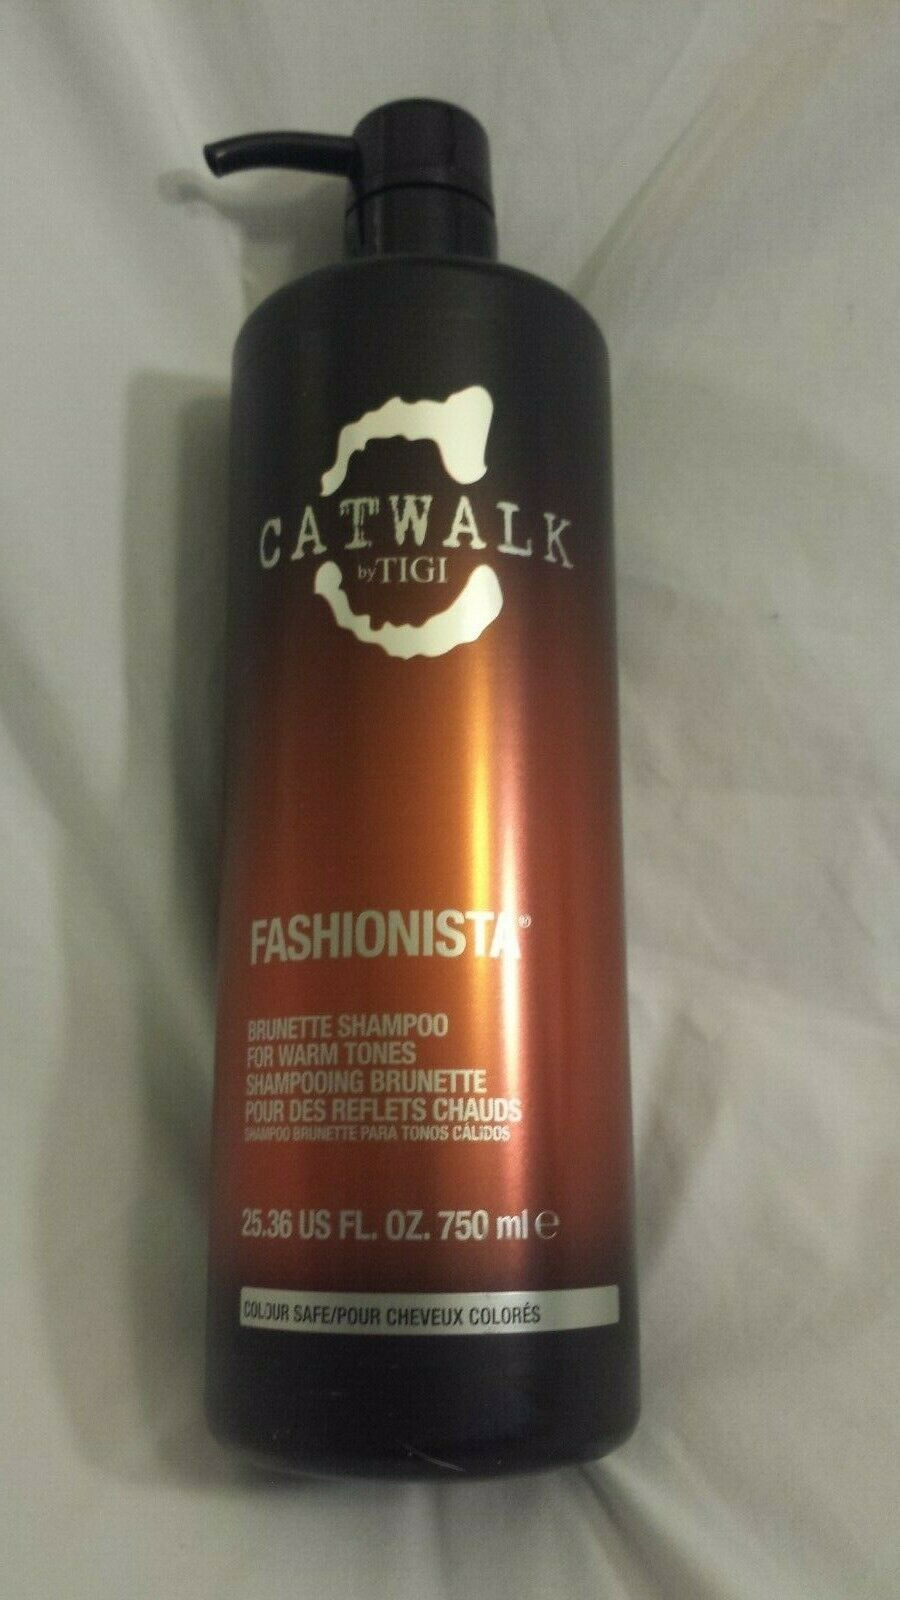 Catwalk by TIGI Fashionista Brunette Shampoo for Warm Tones 25.36 FL OZ